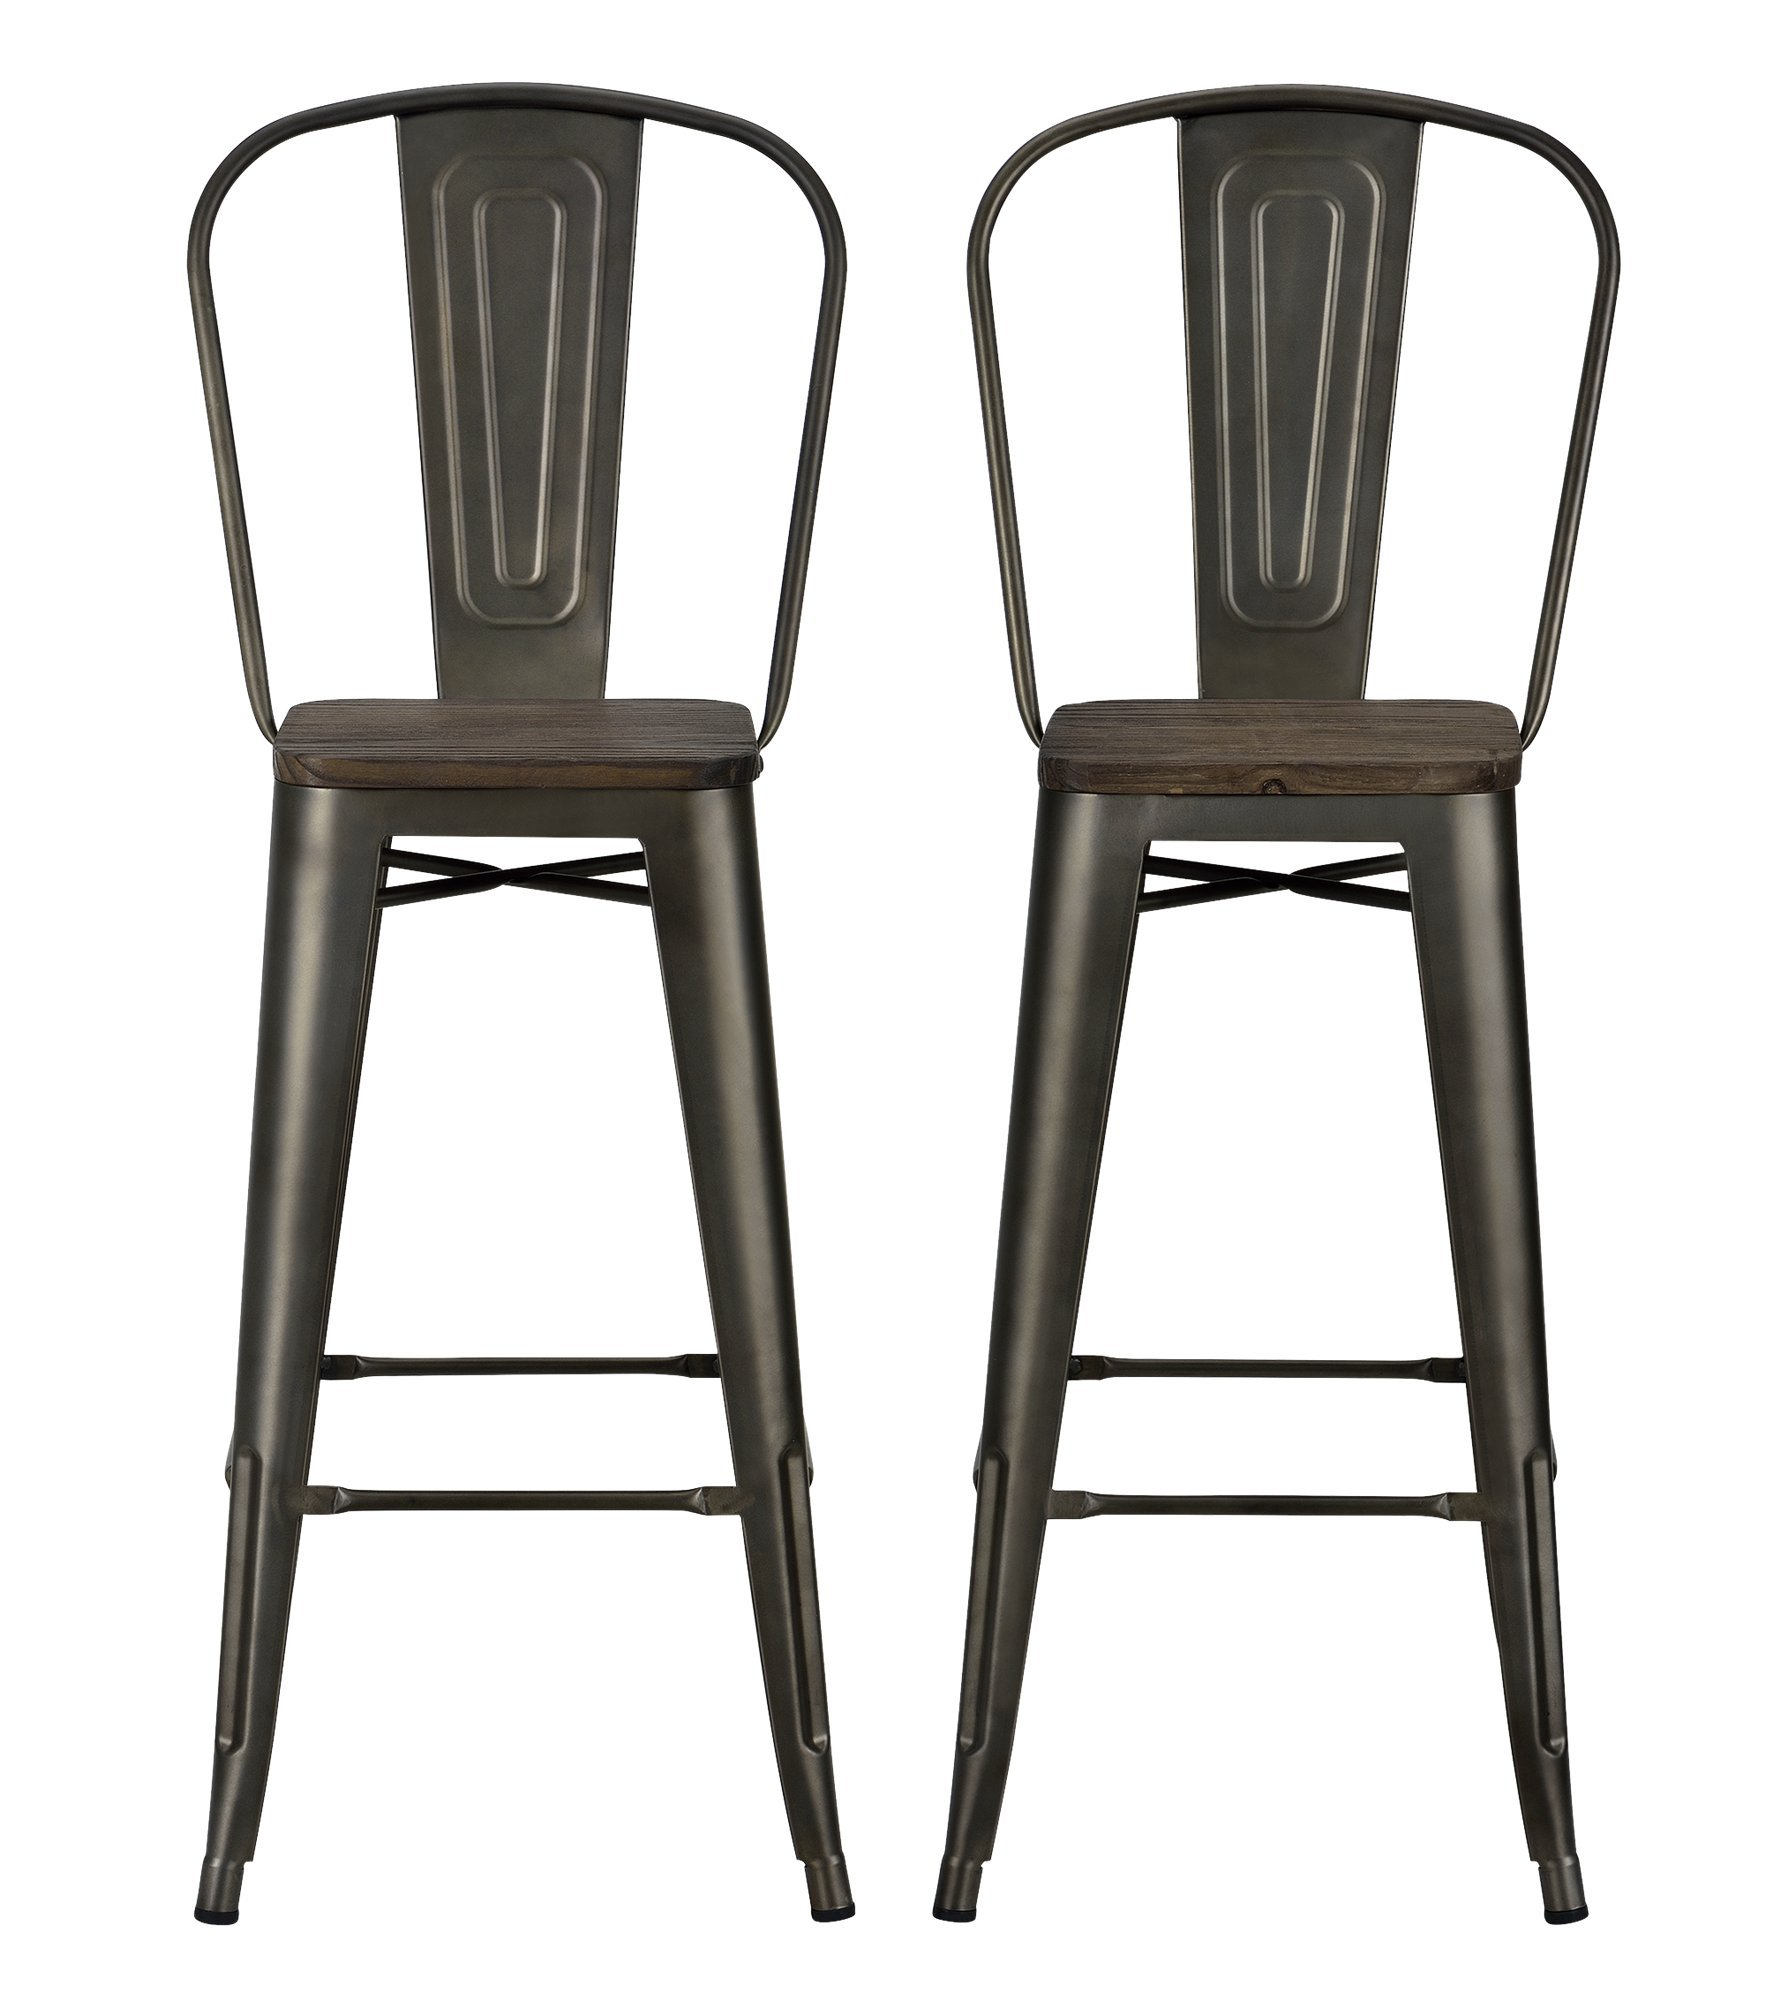 DHP Luxor Metal Counter Stool with Wood Seat and Backrest, Set of two, 30'', Antique Copper by DHP (Image #5)